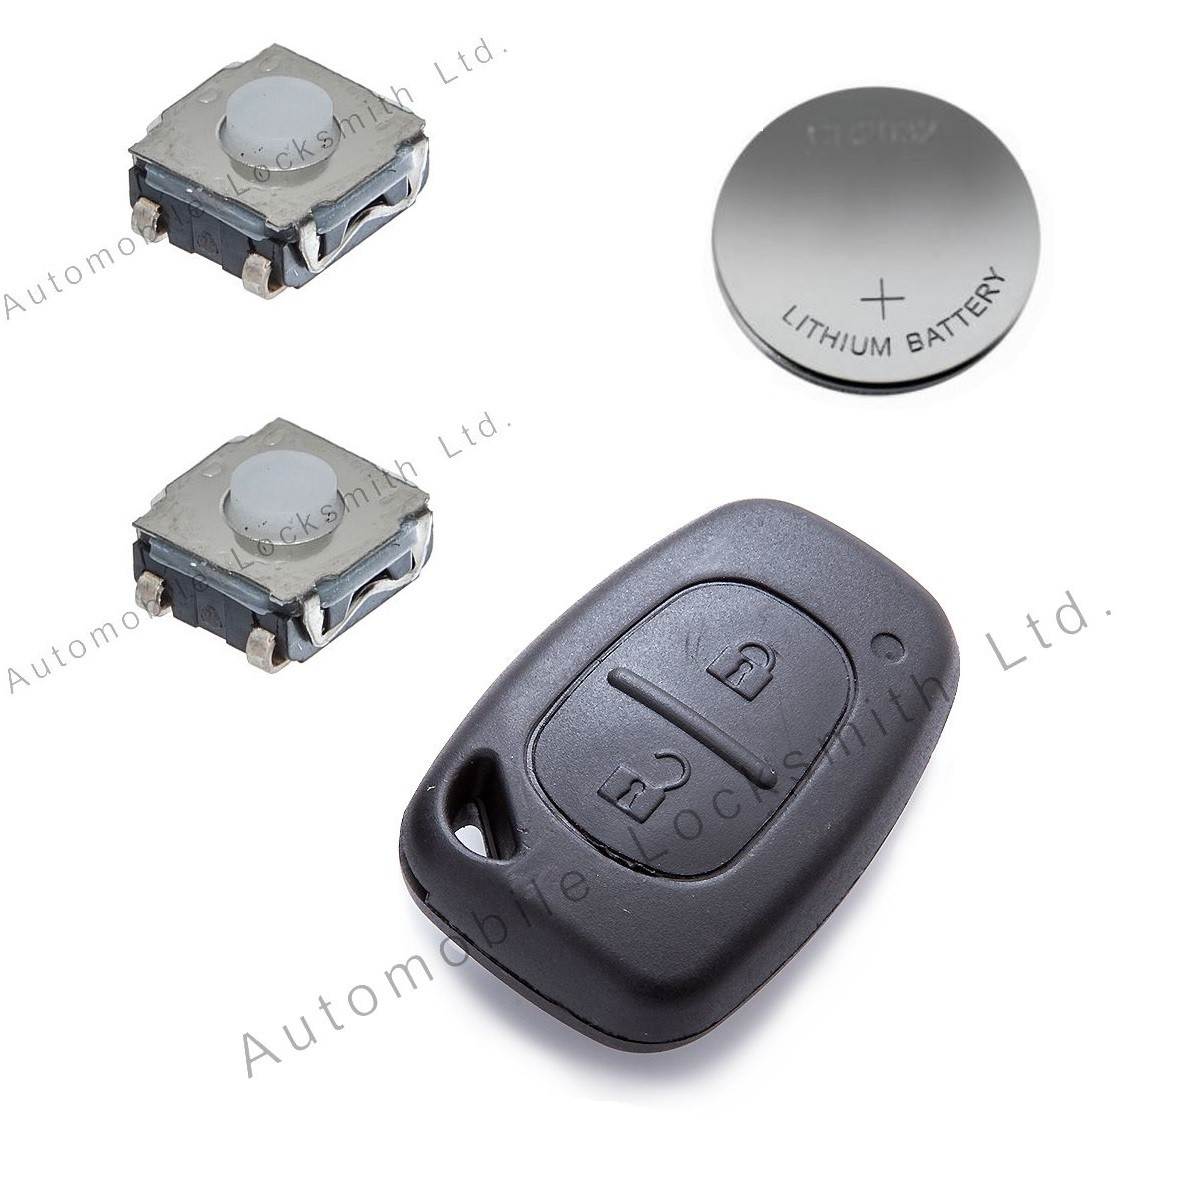 Repair kit for Vauxhall Renault Nissan 2 button remote key